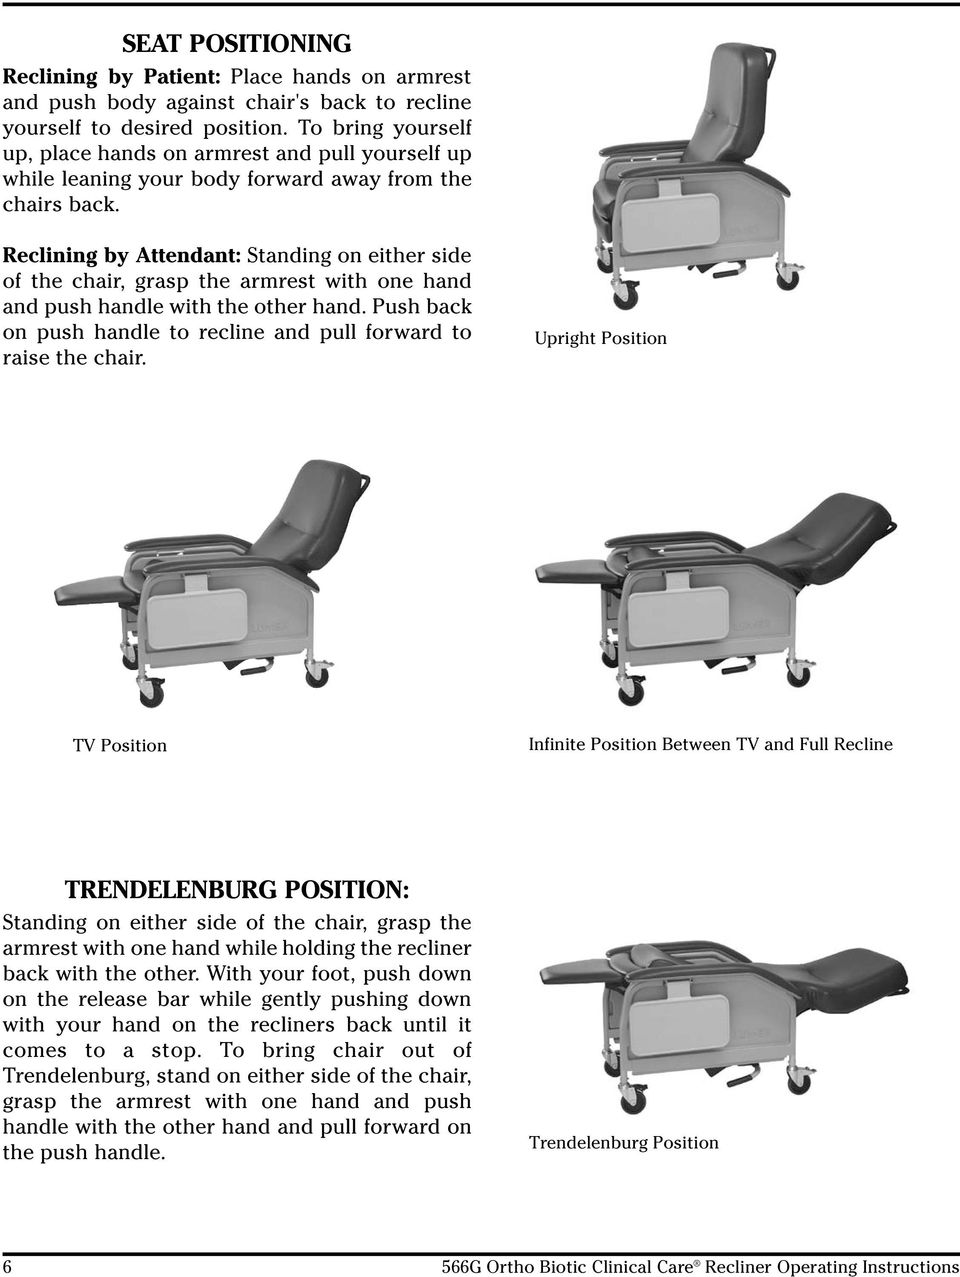 Reclining by Attendant: Standing on either side of the chair, grasp the armrest with one hand and push handle with the other hand.